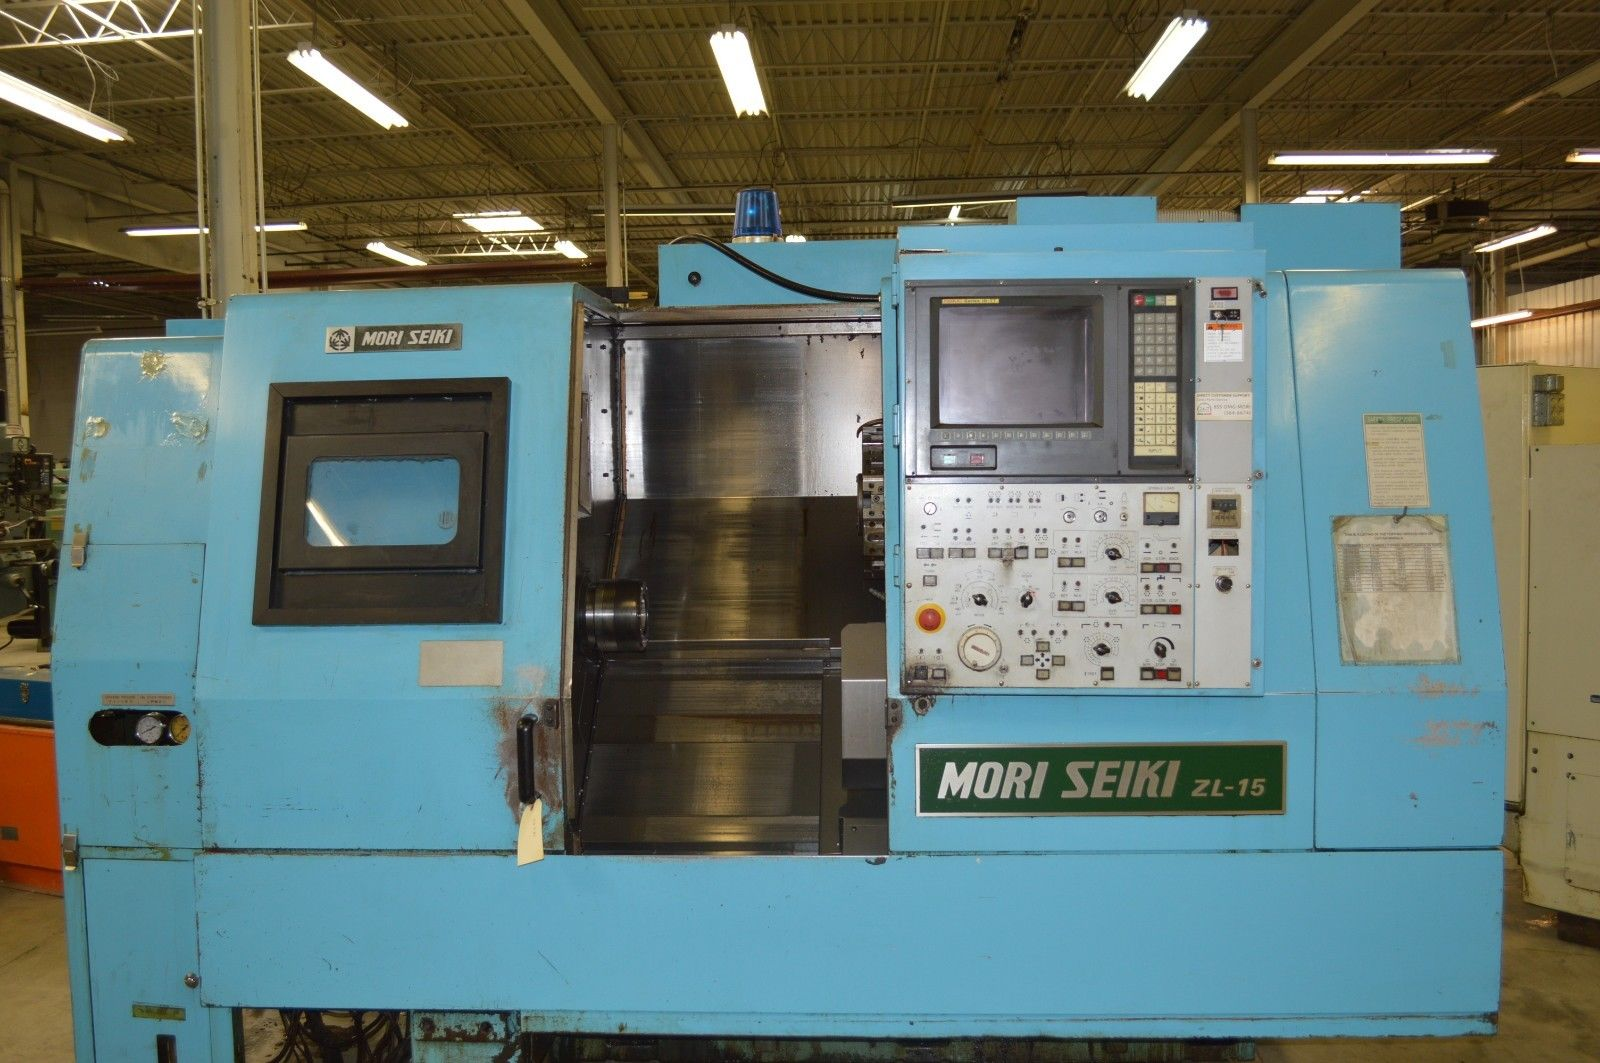 Used CNC Lathes And Turning Centers For Sale - MORI SEIKI ZL